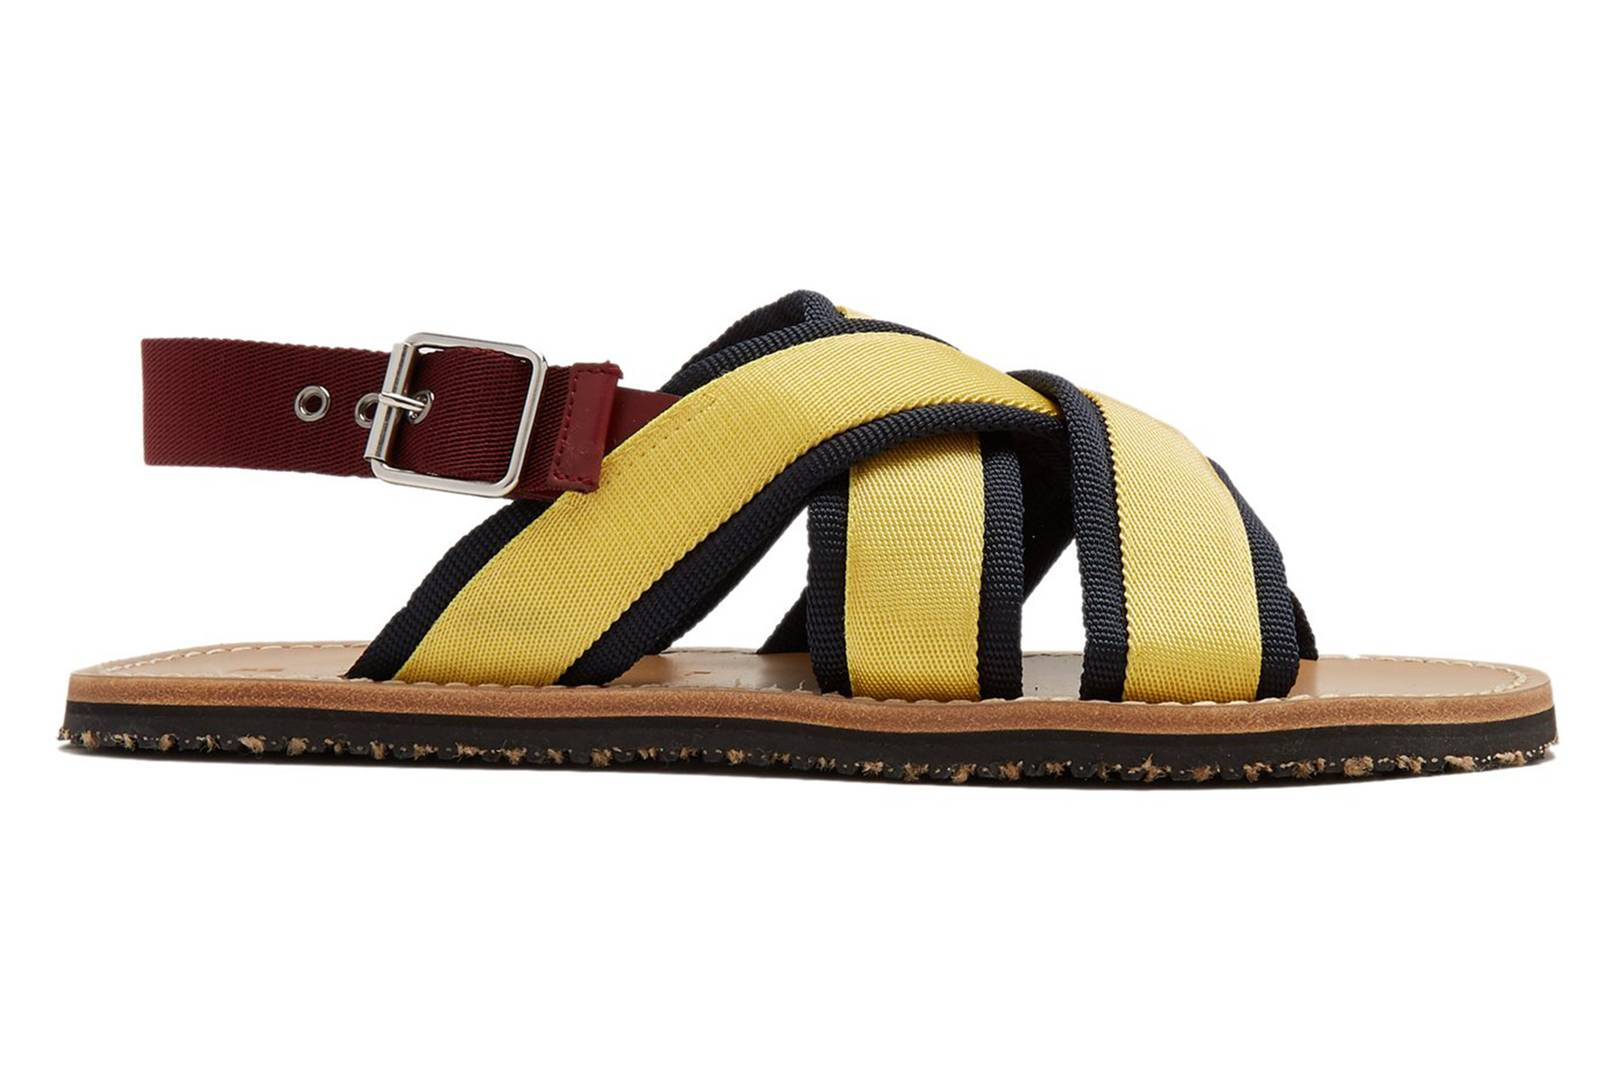 76abbe80c Best men s sandals and sliders